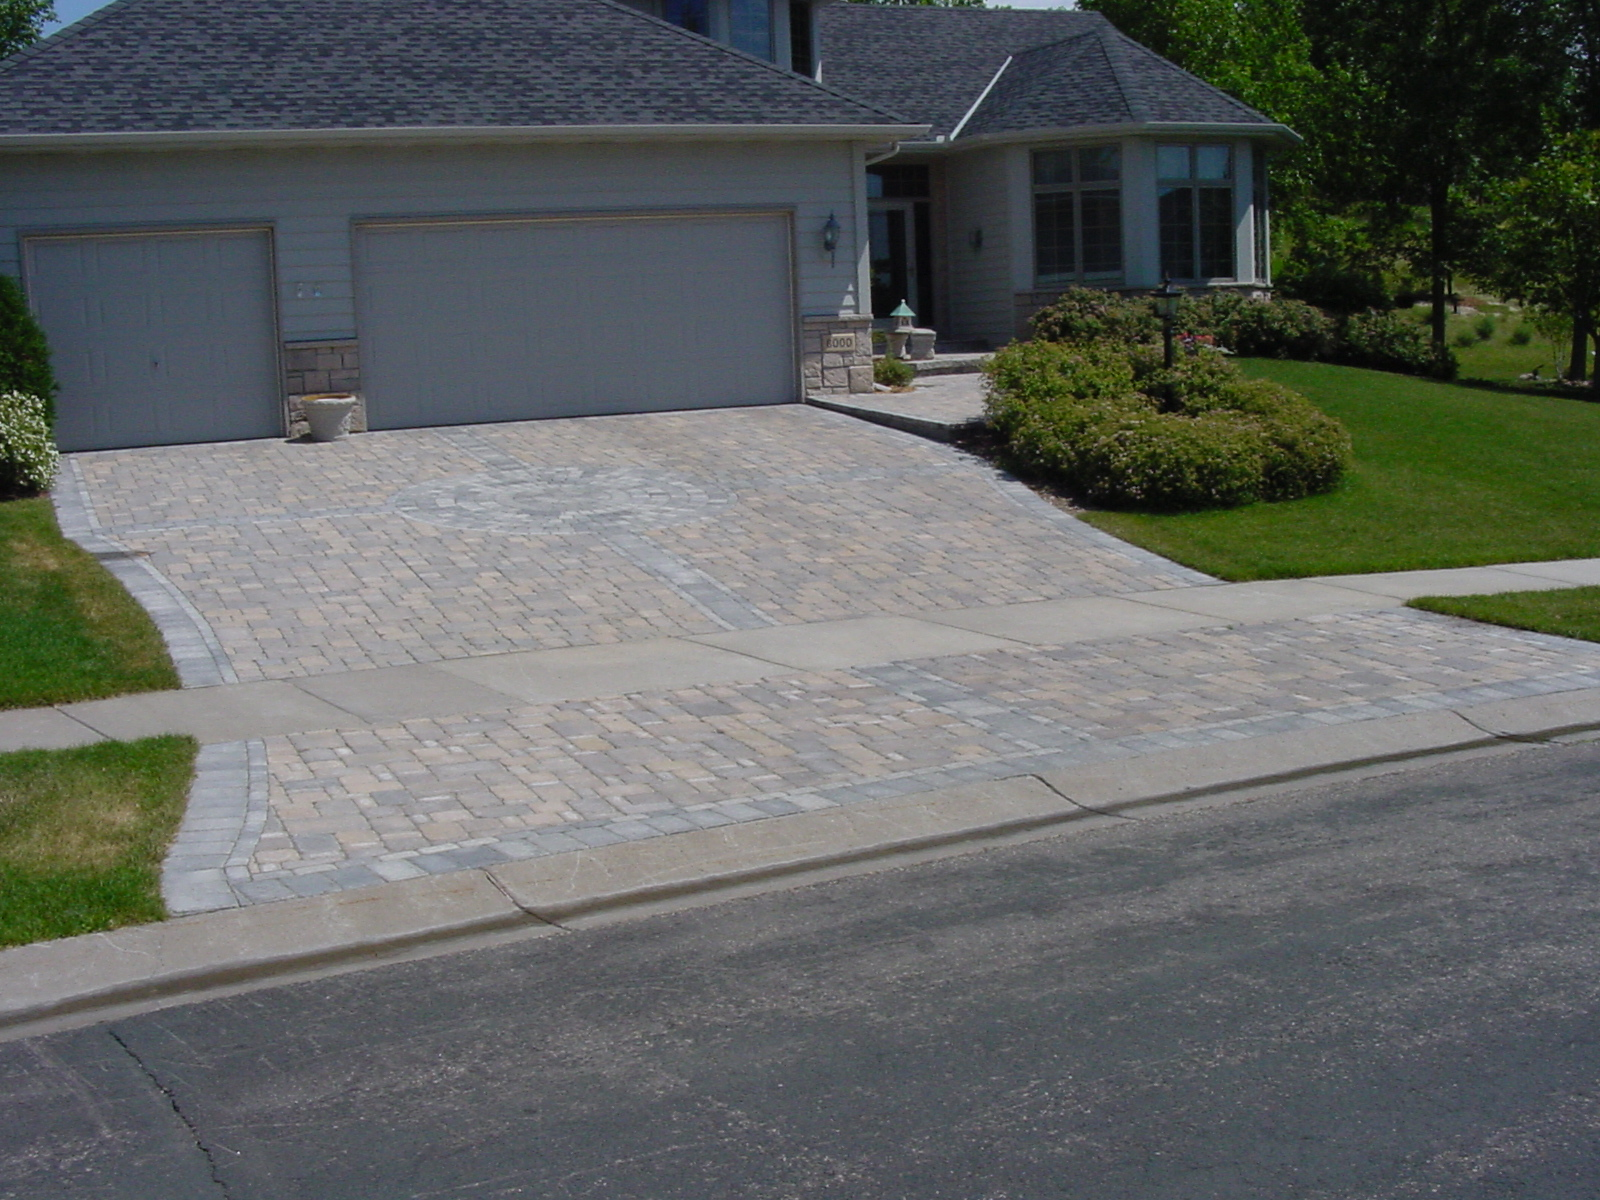 Brick Driveway Design Ideas In Maple Grove, ...